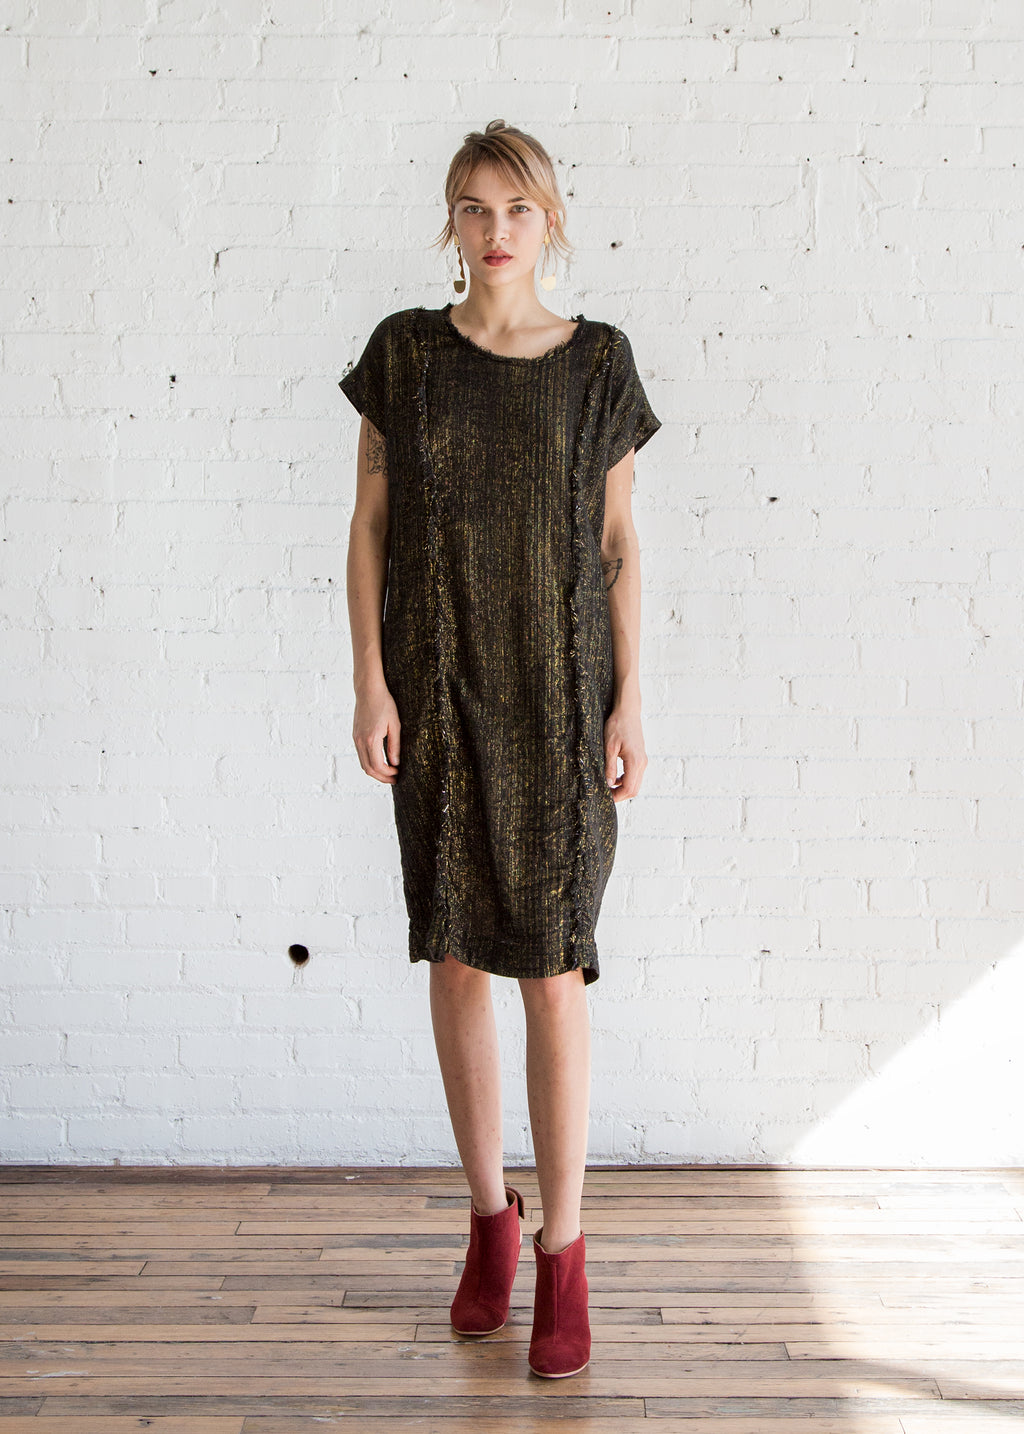 Raquel Allegra Raw Edge T Shirt Dress Lame Broadcloth / Black - SOLD OUT